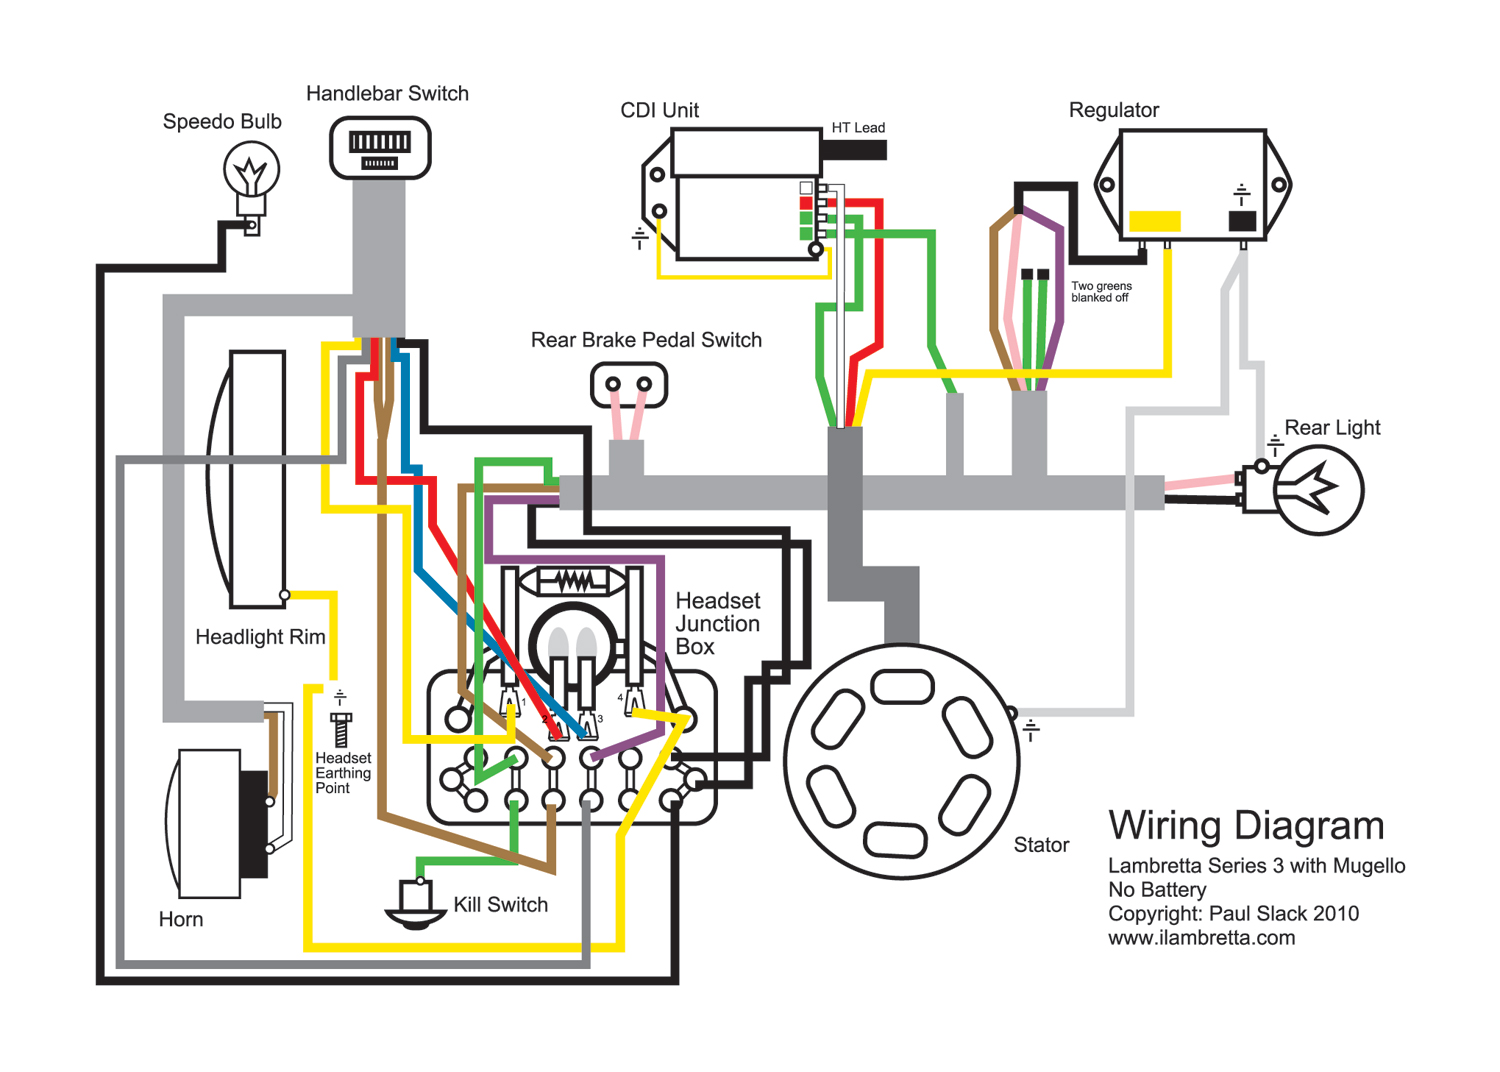 Lambretta Wiring Loom Ac Or Dc Block And Schematic Diagrams Circuits Restoration The Rh Lambrettarestorations Blogspot Com Electrical